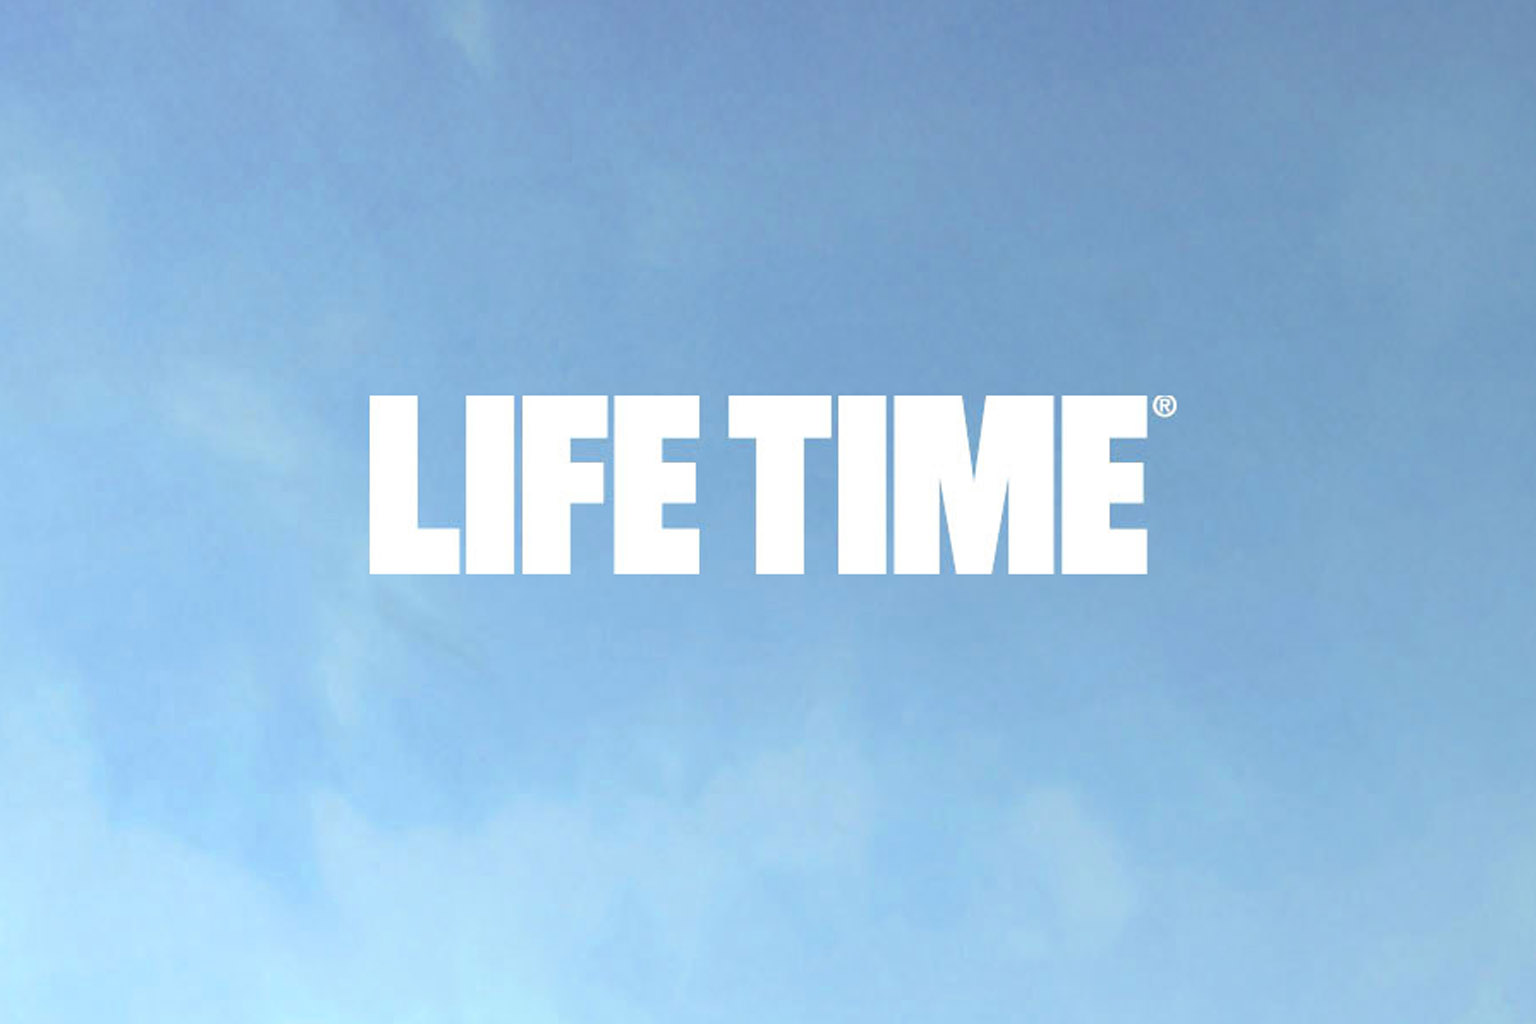 White Life Time master logo on a light blue background